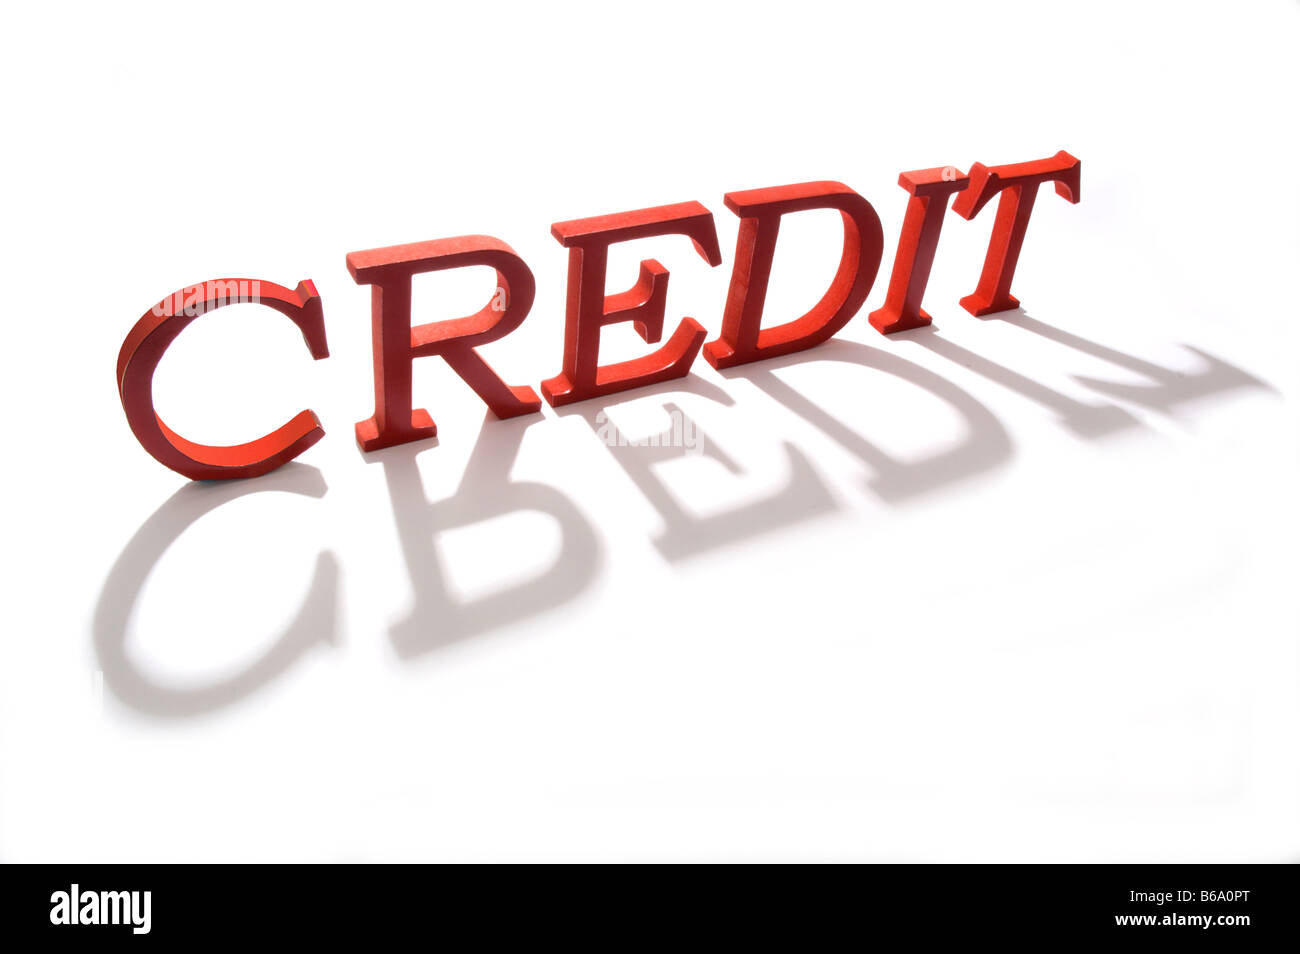 The word credit in red - Stock Image